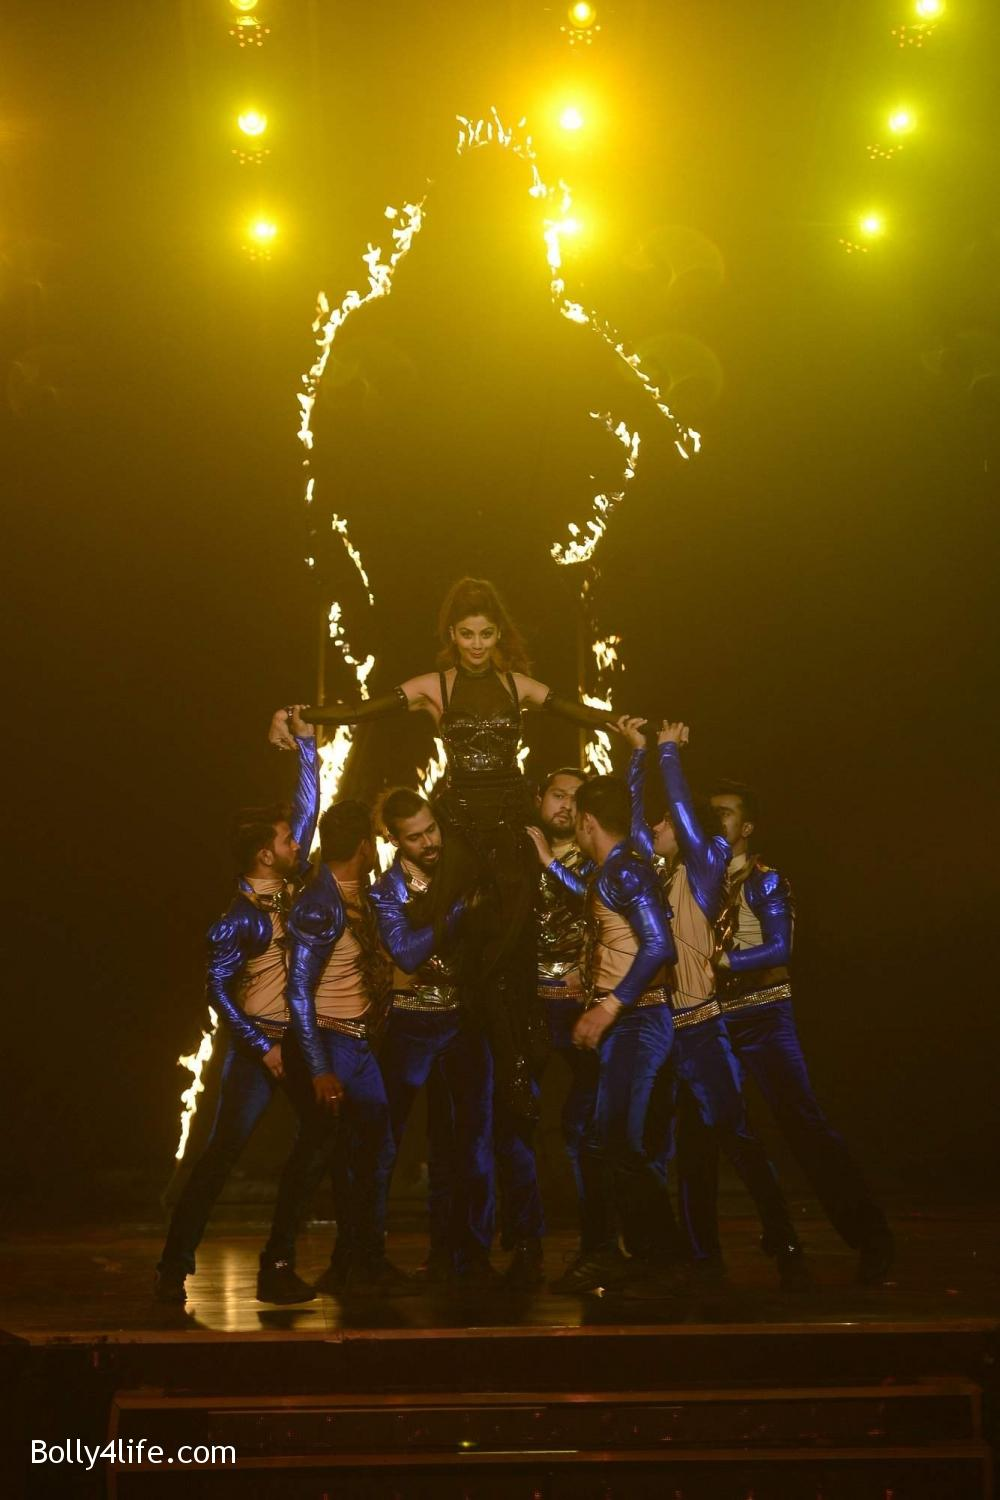 Shilpa-Shetty-perform-at-Sony-TV-reality-show-Super-Dancer-Finale-in-Mumbai-4.jpg